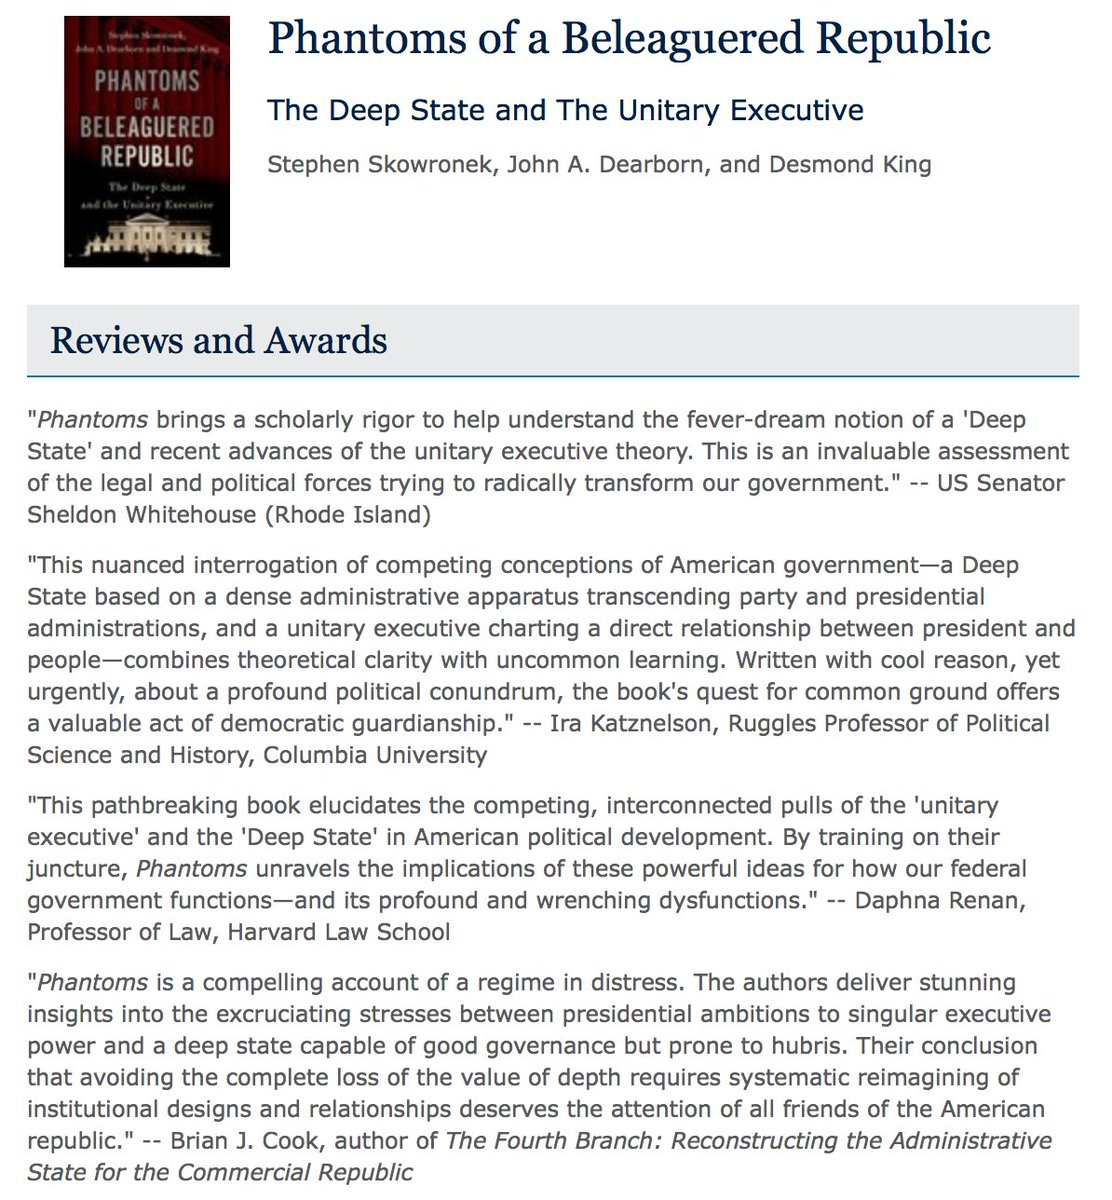 The @OUPPolitics webpage for Phantoms of a Beleaguered Republic now has book blurbs! Very grateful for these blurbs from @SenWhitehouse, Ira Katznelson, @DaphnaRenan, @Brian_J_Cook, @MargaretWeir4, Rogers Smith, @rudalev, Sidney Milkis, & @r_lieberman. tinyurl.com/PhantomsOxford…